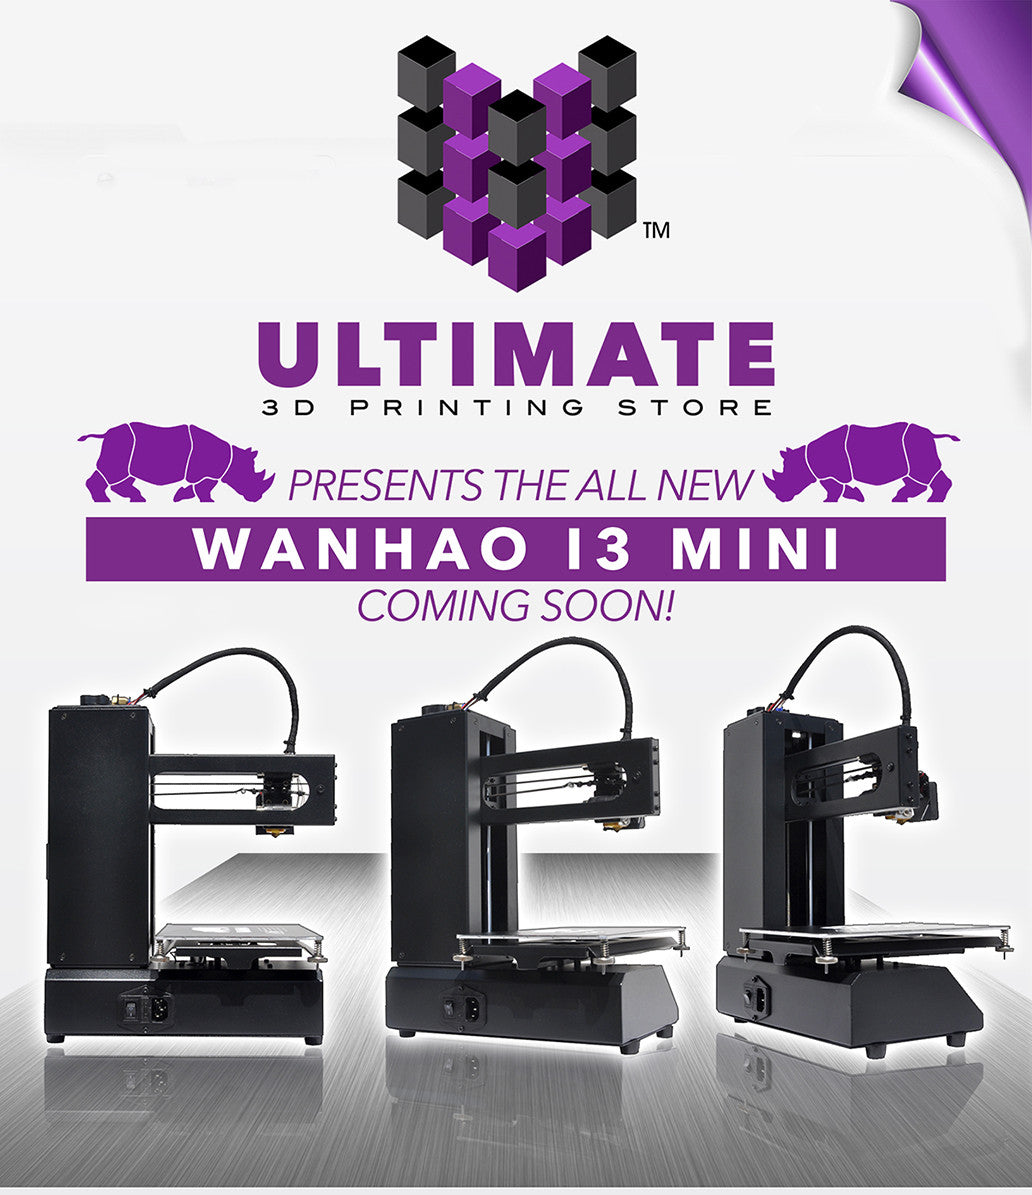 WANHAO I3 MINI - COMPACT 3D DESKTOP PRINTER